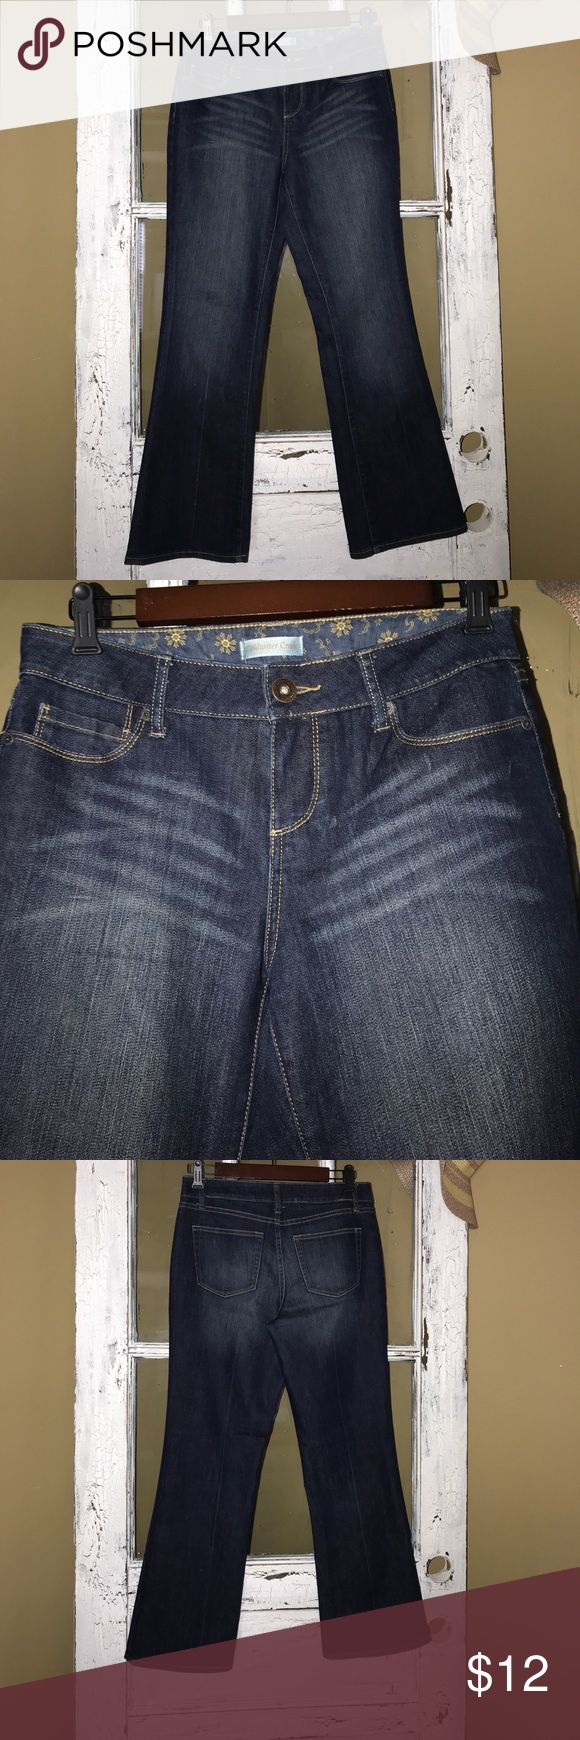 Coldwater Creek Bootcut Jeans Size 6P Coldwater Creek Bootcut Jeans Size 6P. Coldwater Creek Jeans Boot Cut